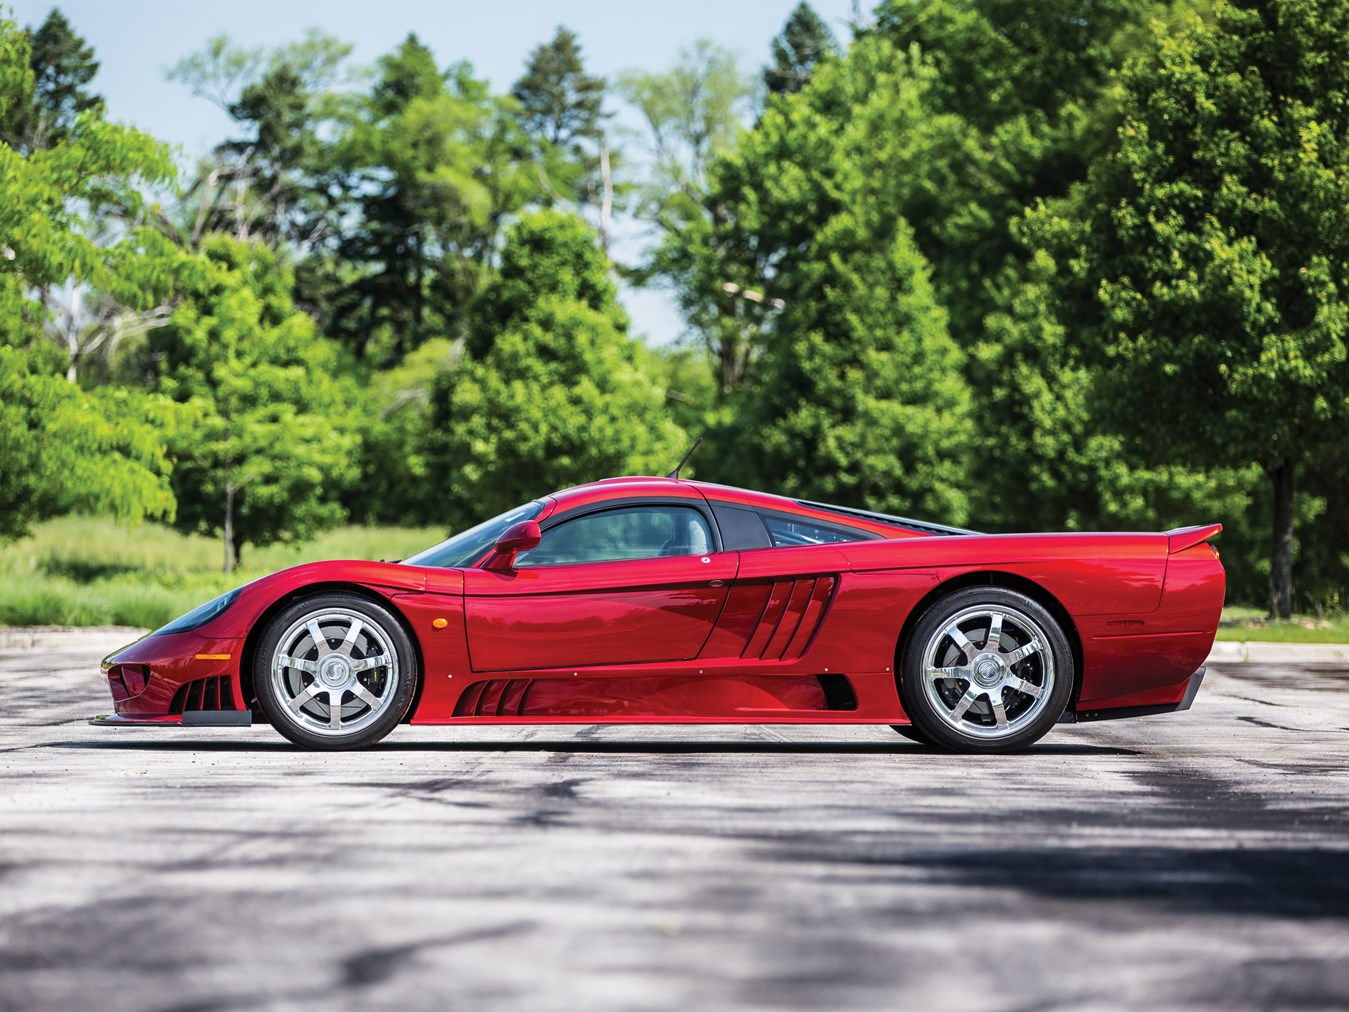 saleen s7 2006 750 hp twin turbo for sale rm sothebys auction july 30 2016. Black Bedroom Furniture Sets. Home Design Ideas